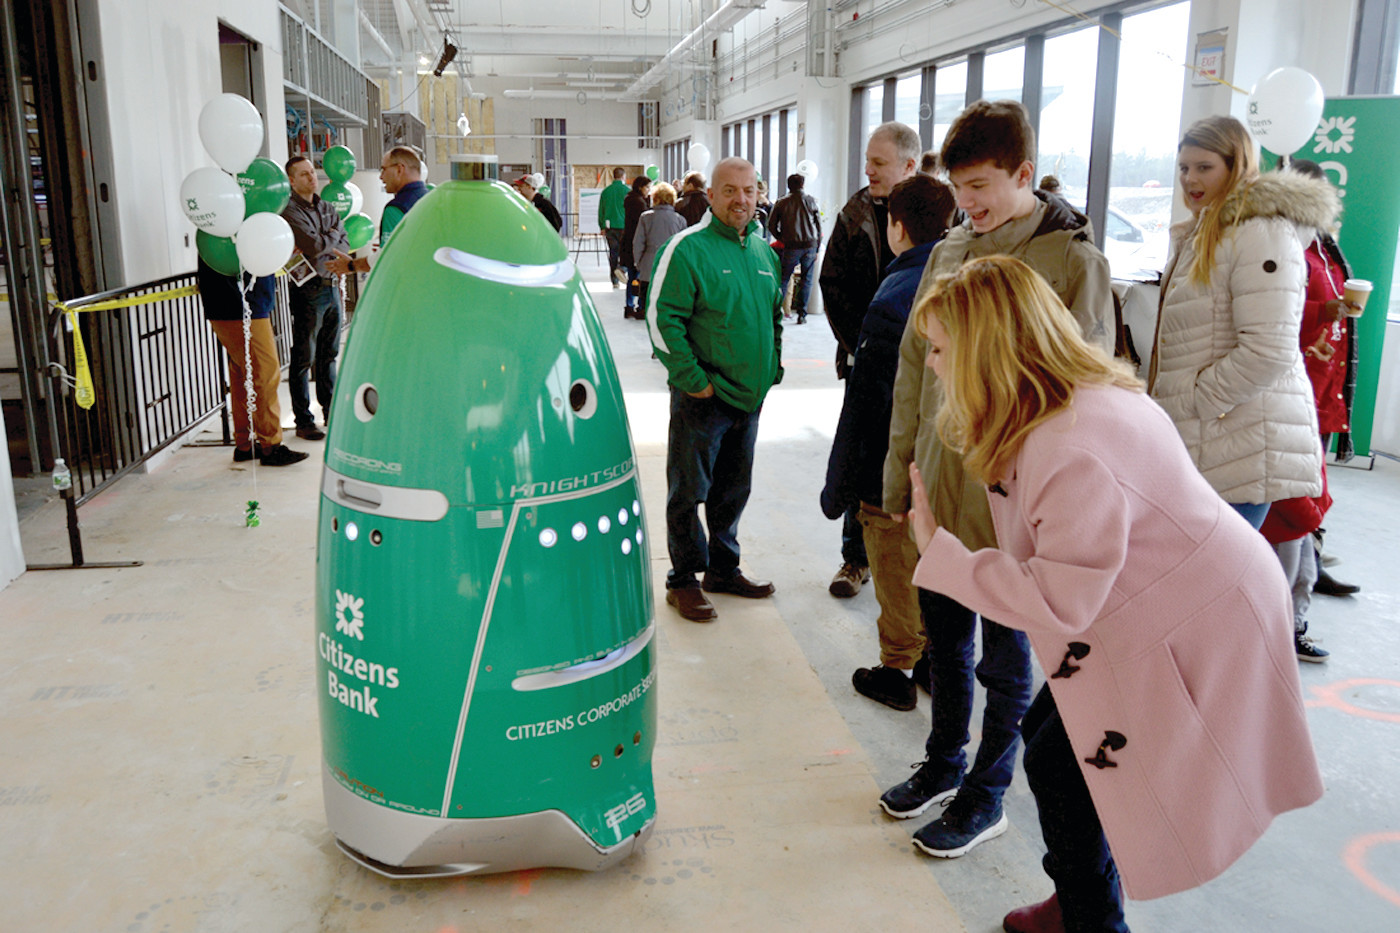 ROBOT SECURITY: This green security robot will be programmed to patrol the grounds and to interact with people as it makes its way around the Citizens Campus.  (Johnston Sun Rise photo by Tim Forsberg)